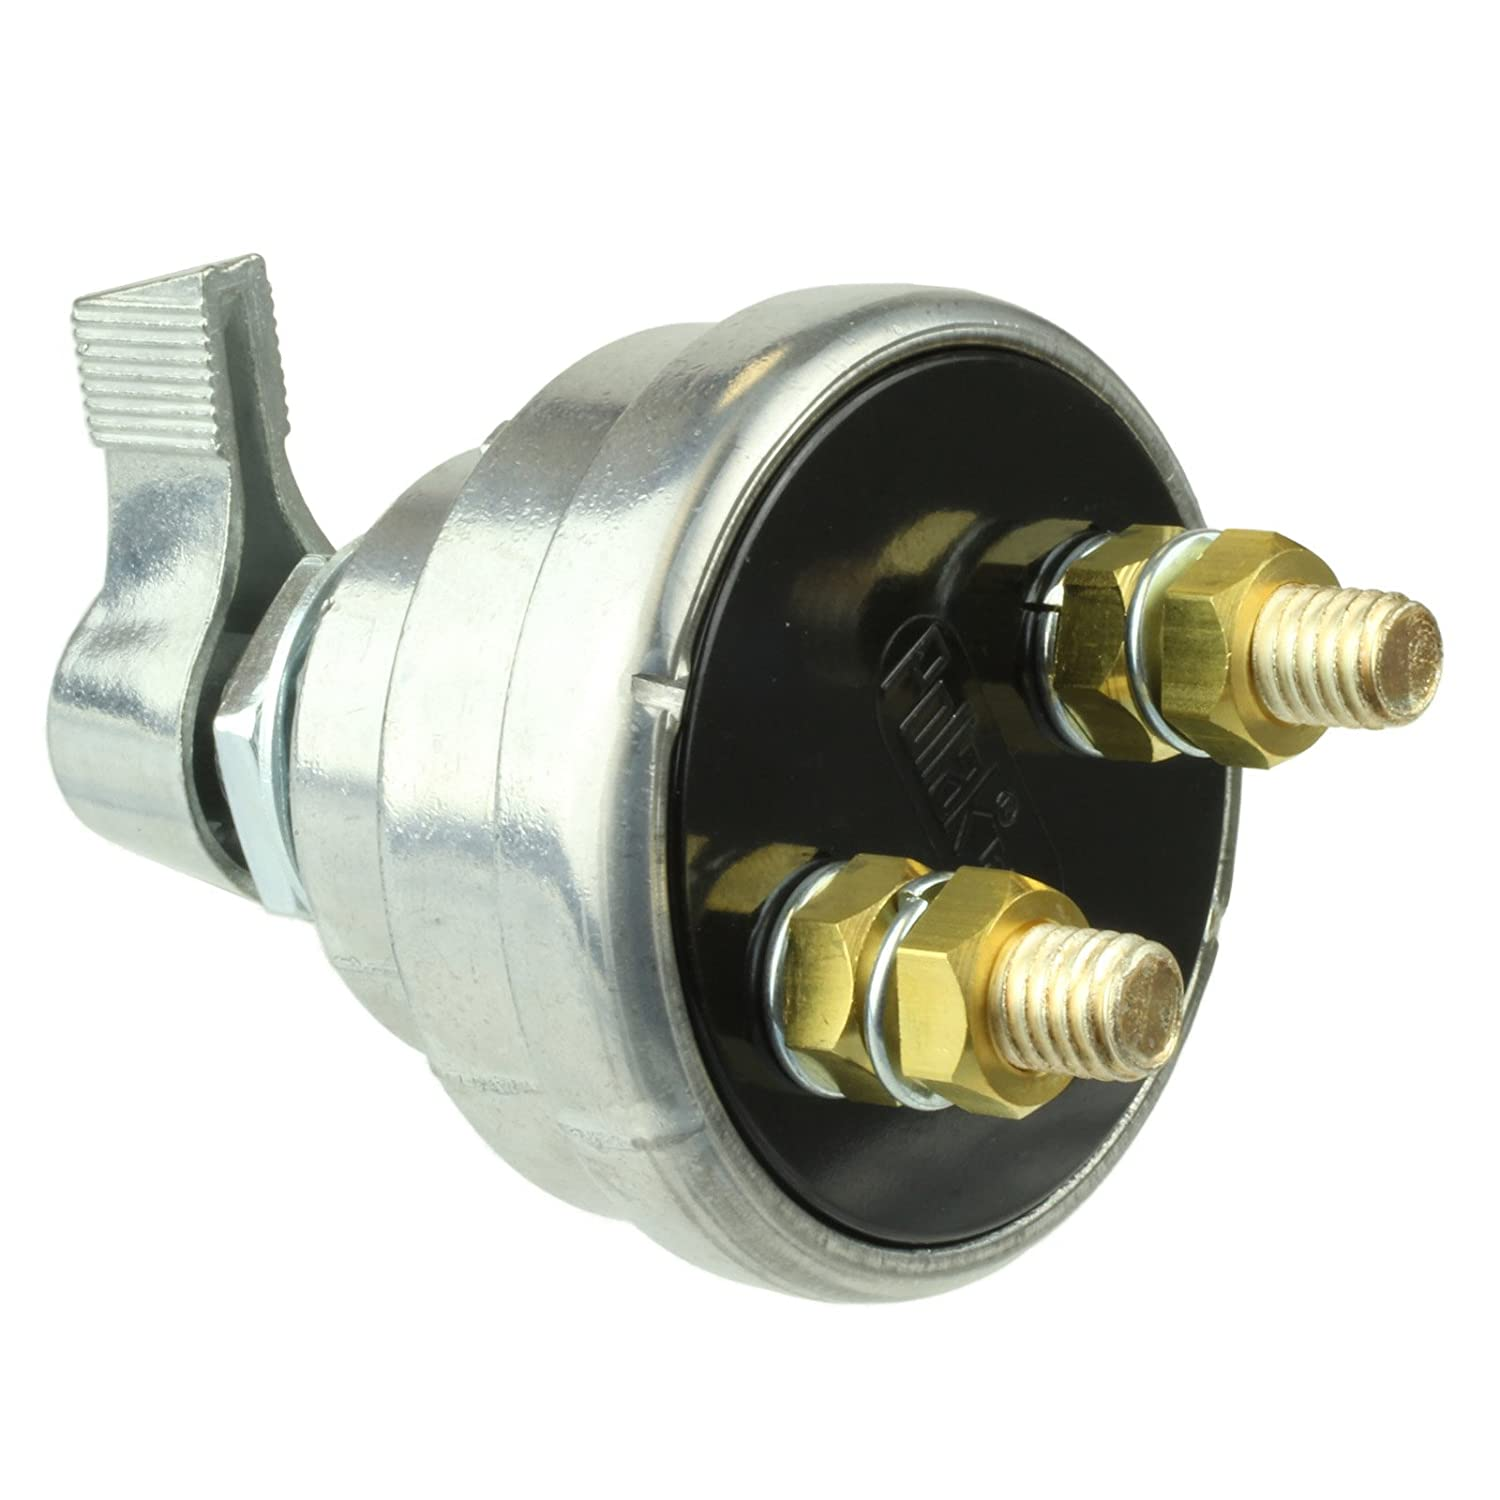 JN Heavy Duty Master Disconnect Switch